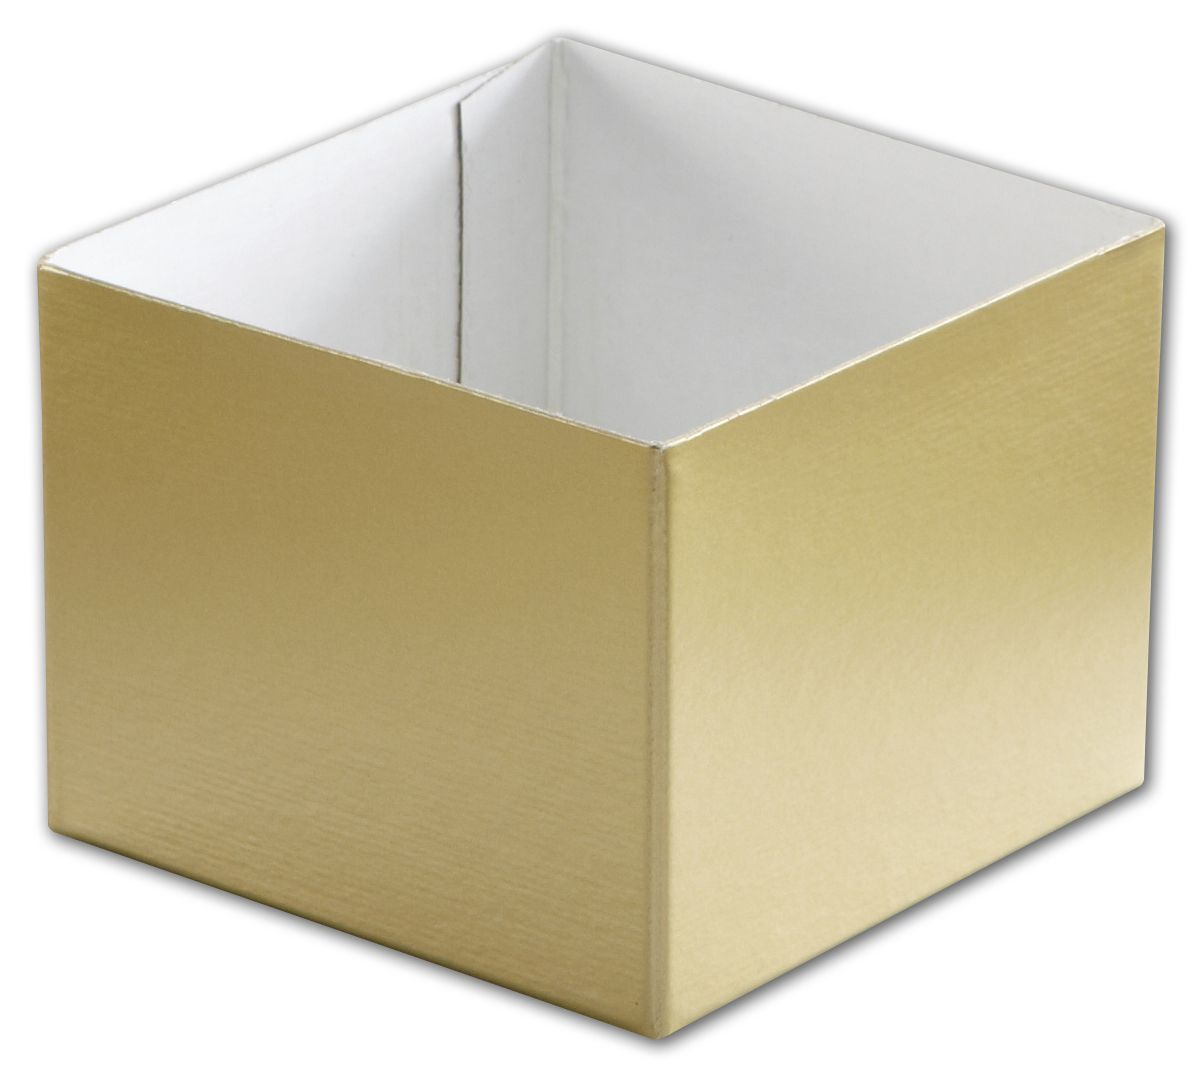 "Gold Hi-Wall Gift Box Bottoms, 4 x 4 x 3"" (50 Box Bottoms) - BOWS-H43-115"